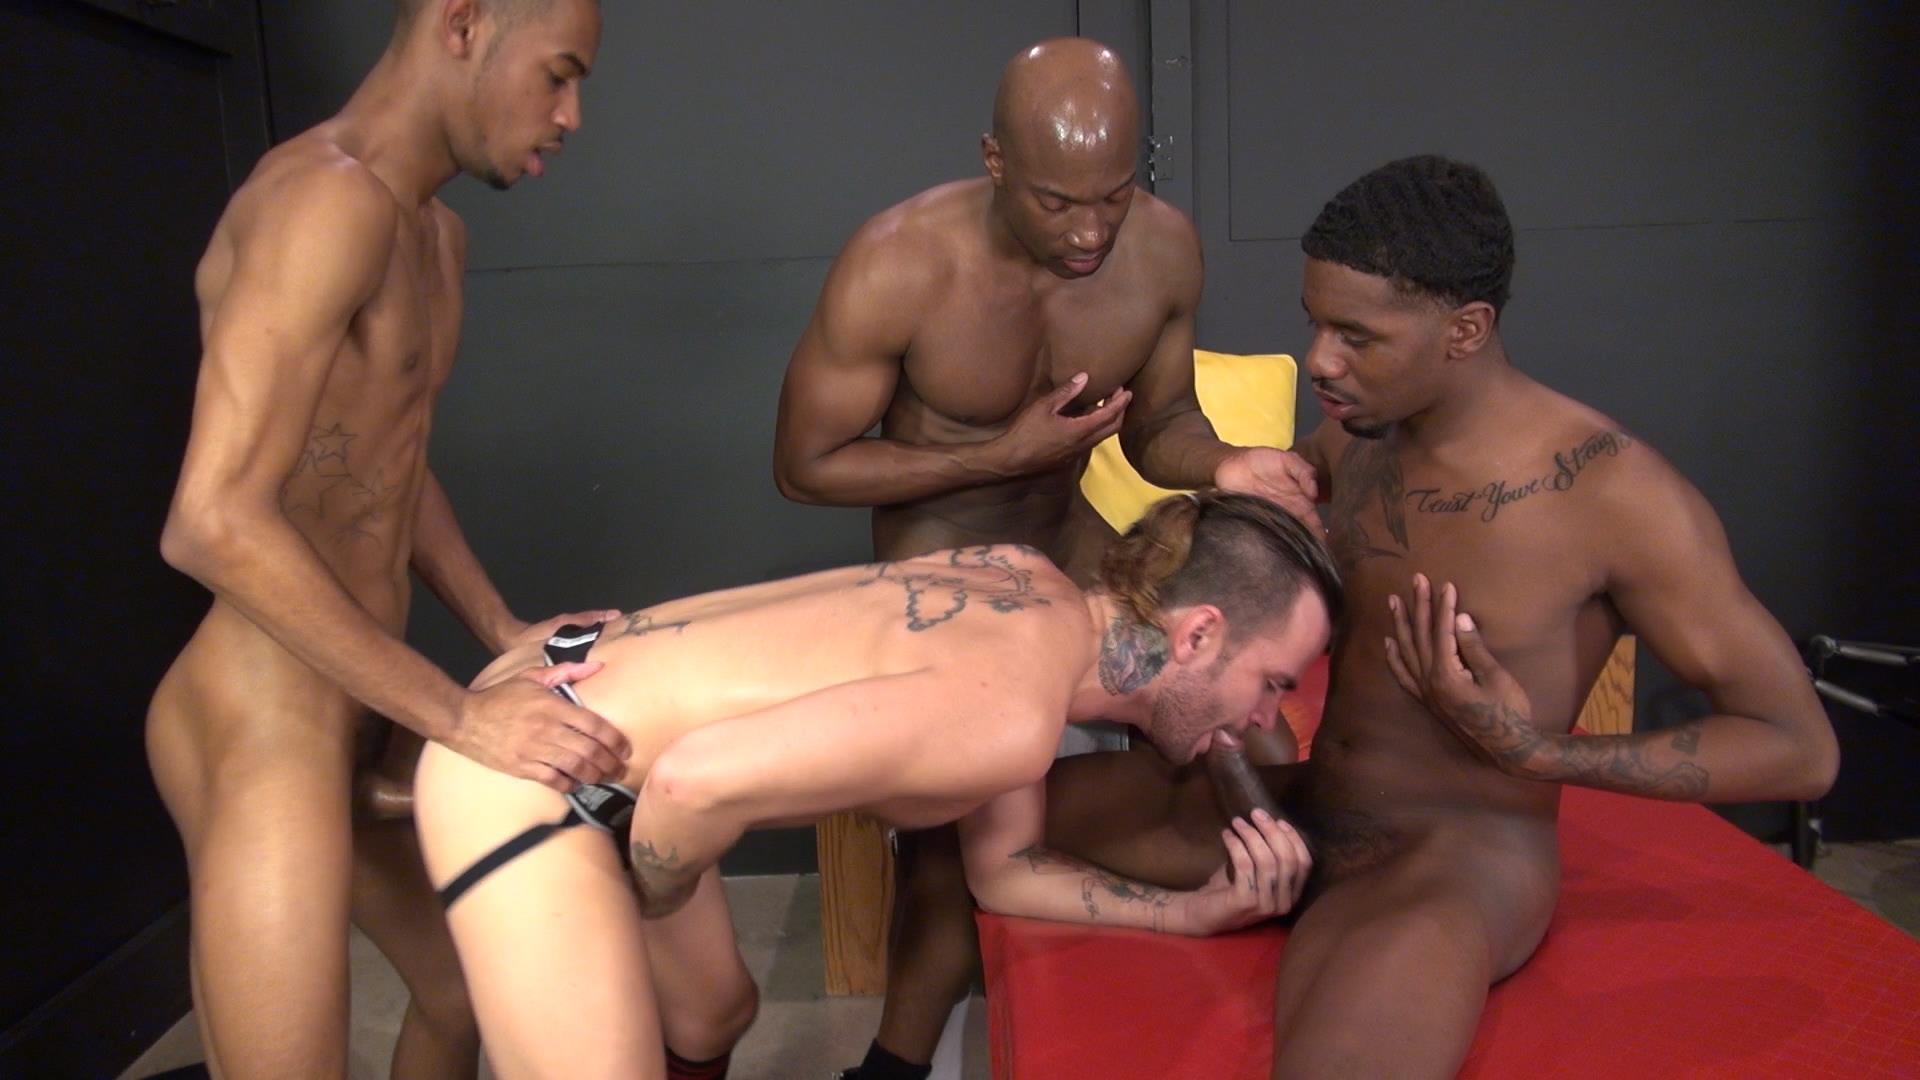 Raw and Rough Champ Robinson Lukas Cipriani Knockout Tigger Redd BBBH Amateur Gay Porn 06 White Boy Gets A Breeding By Three Big Black Dicks